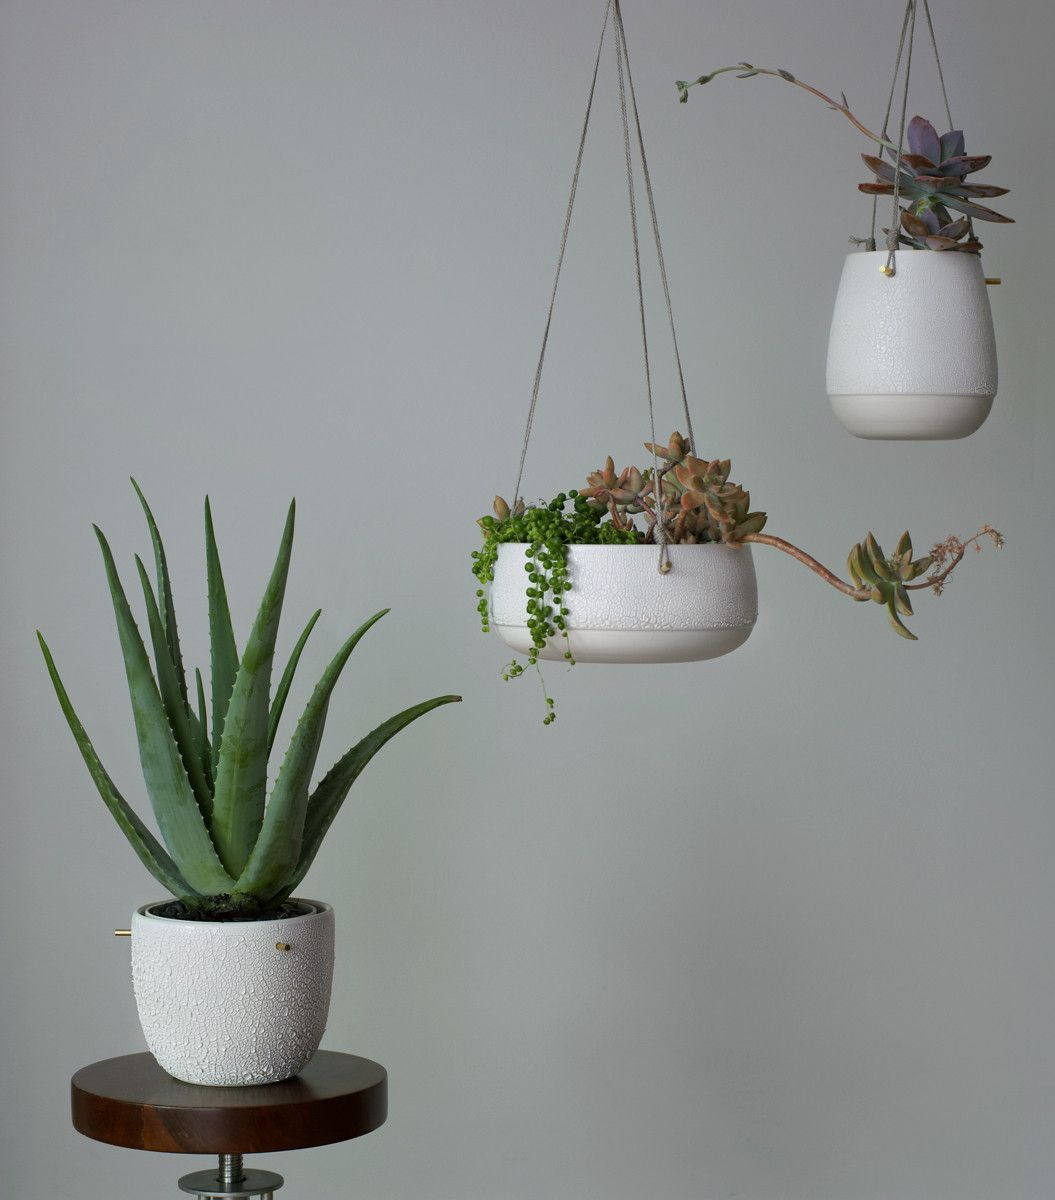 Ceramic Pots For Plants Indoor Shallow Pierced Hanging Planter Potted Plants